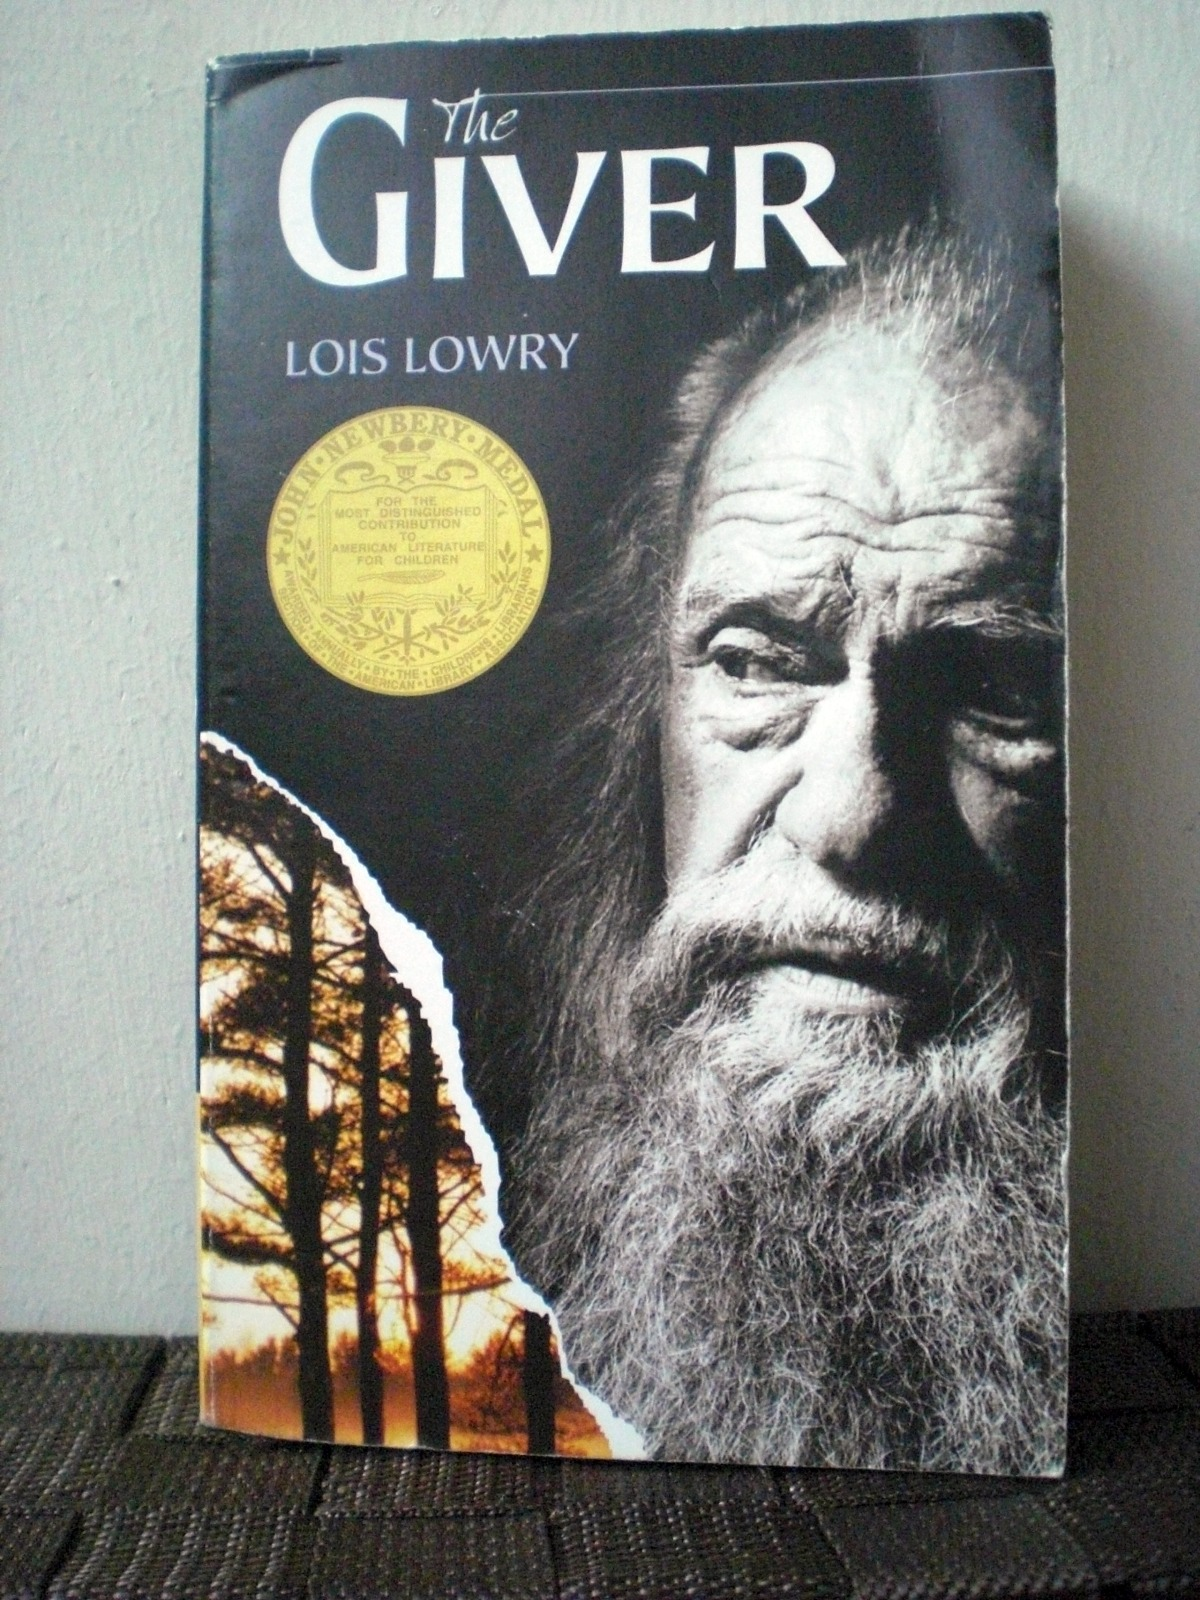 an analysis of the giver by lois lowry The giver lois lowry houghton mifflin company boston for all the children to whom we entrust the future the giver  1 it was almost december, and jonas was beginning to be frightened no wrong word, jonas thought frightened meant that deep, sickening feeling of something terrible about to.